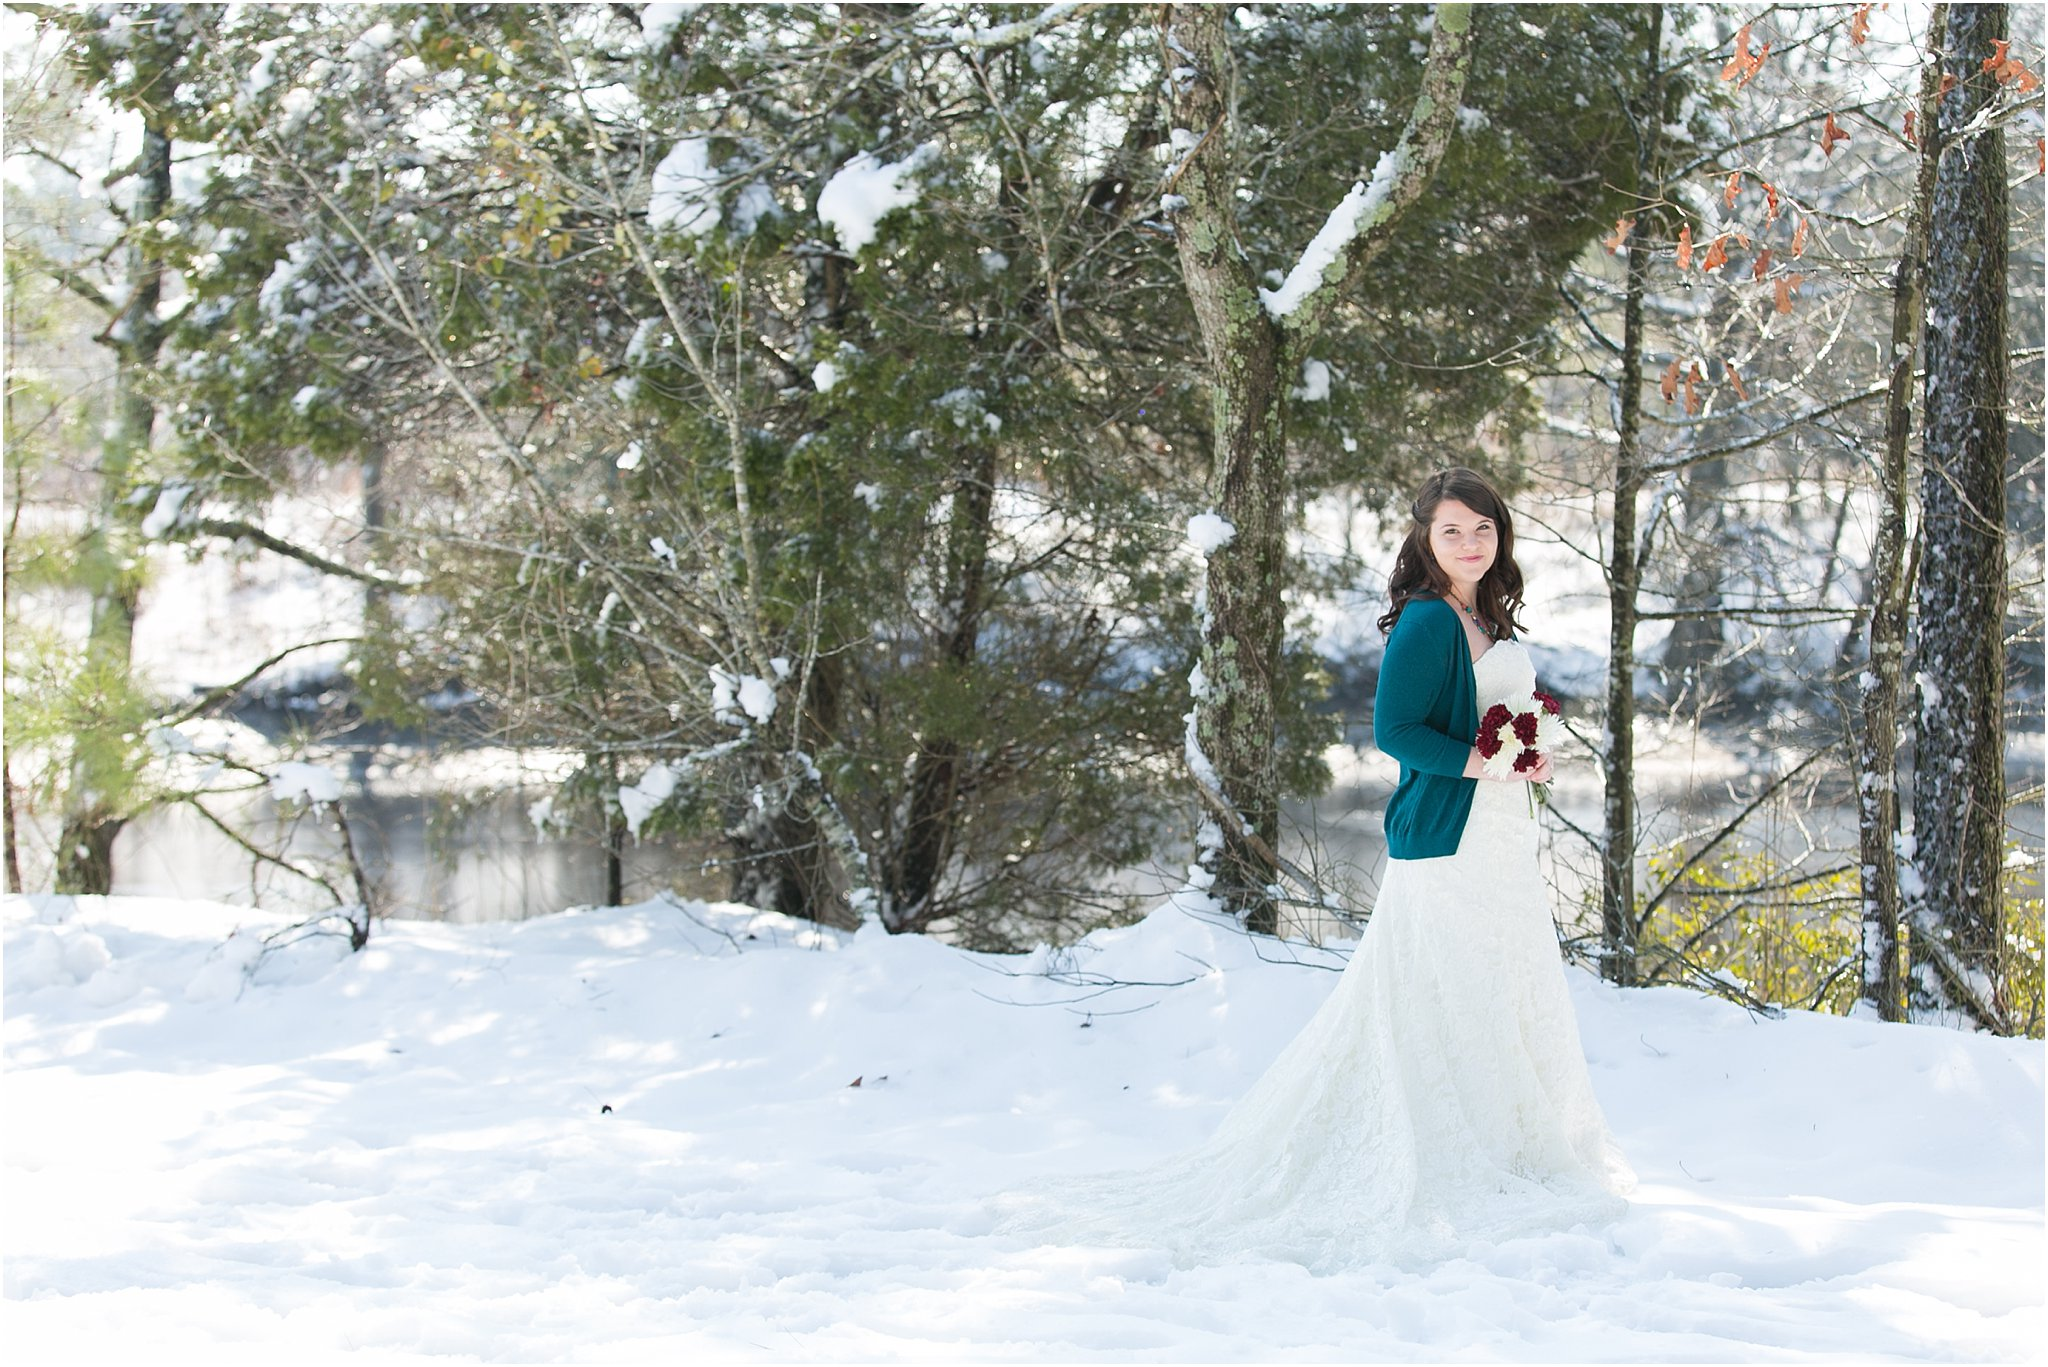 jessica_ryan_photography_winter_bridal_portraits_chesapeake_photographer_0764